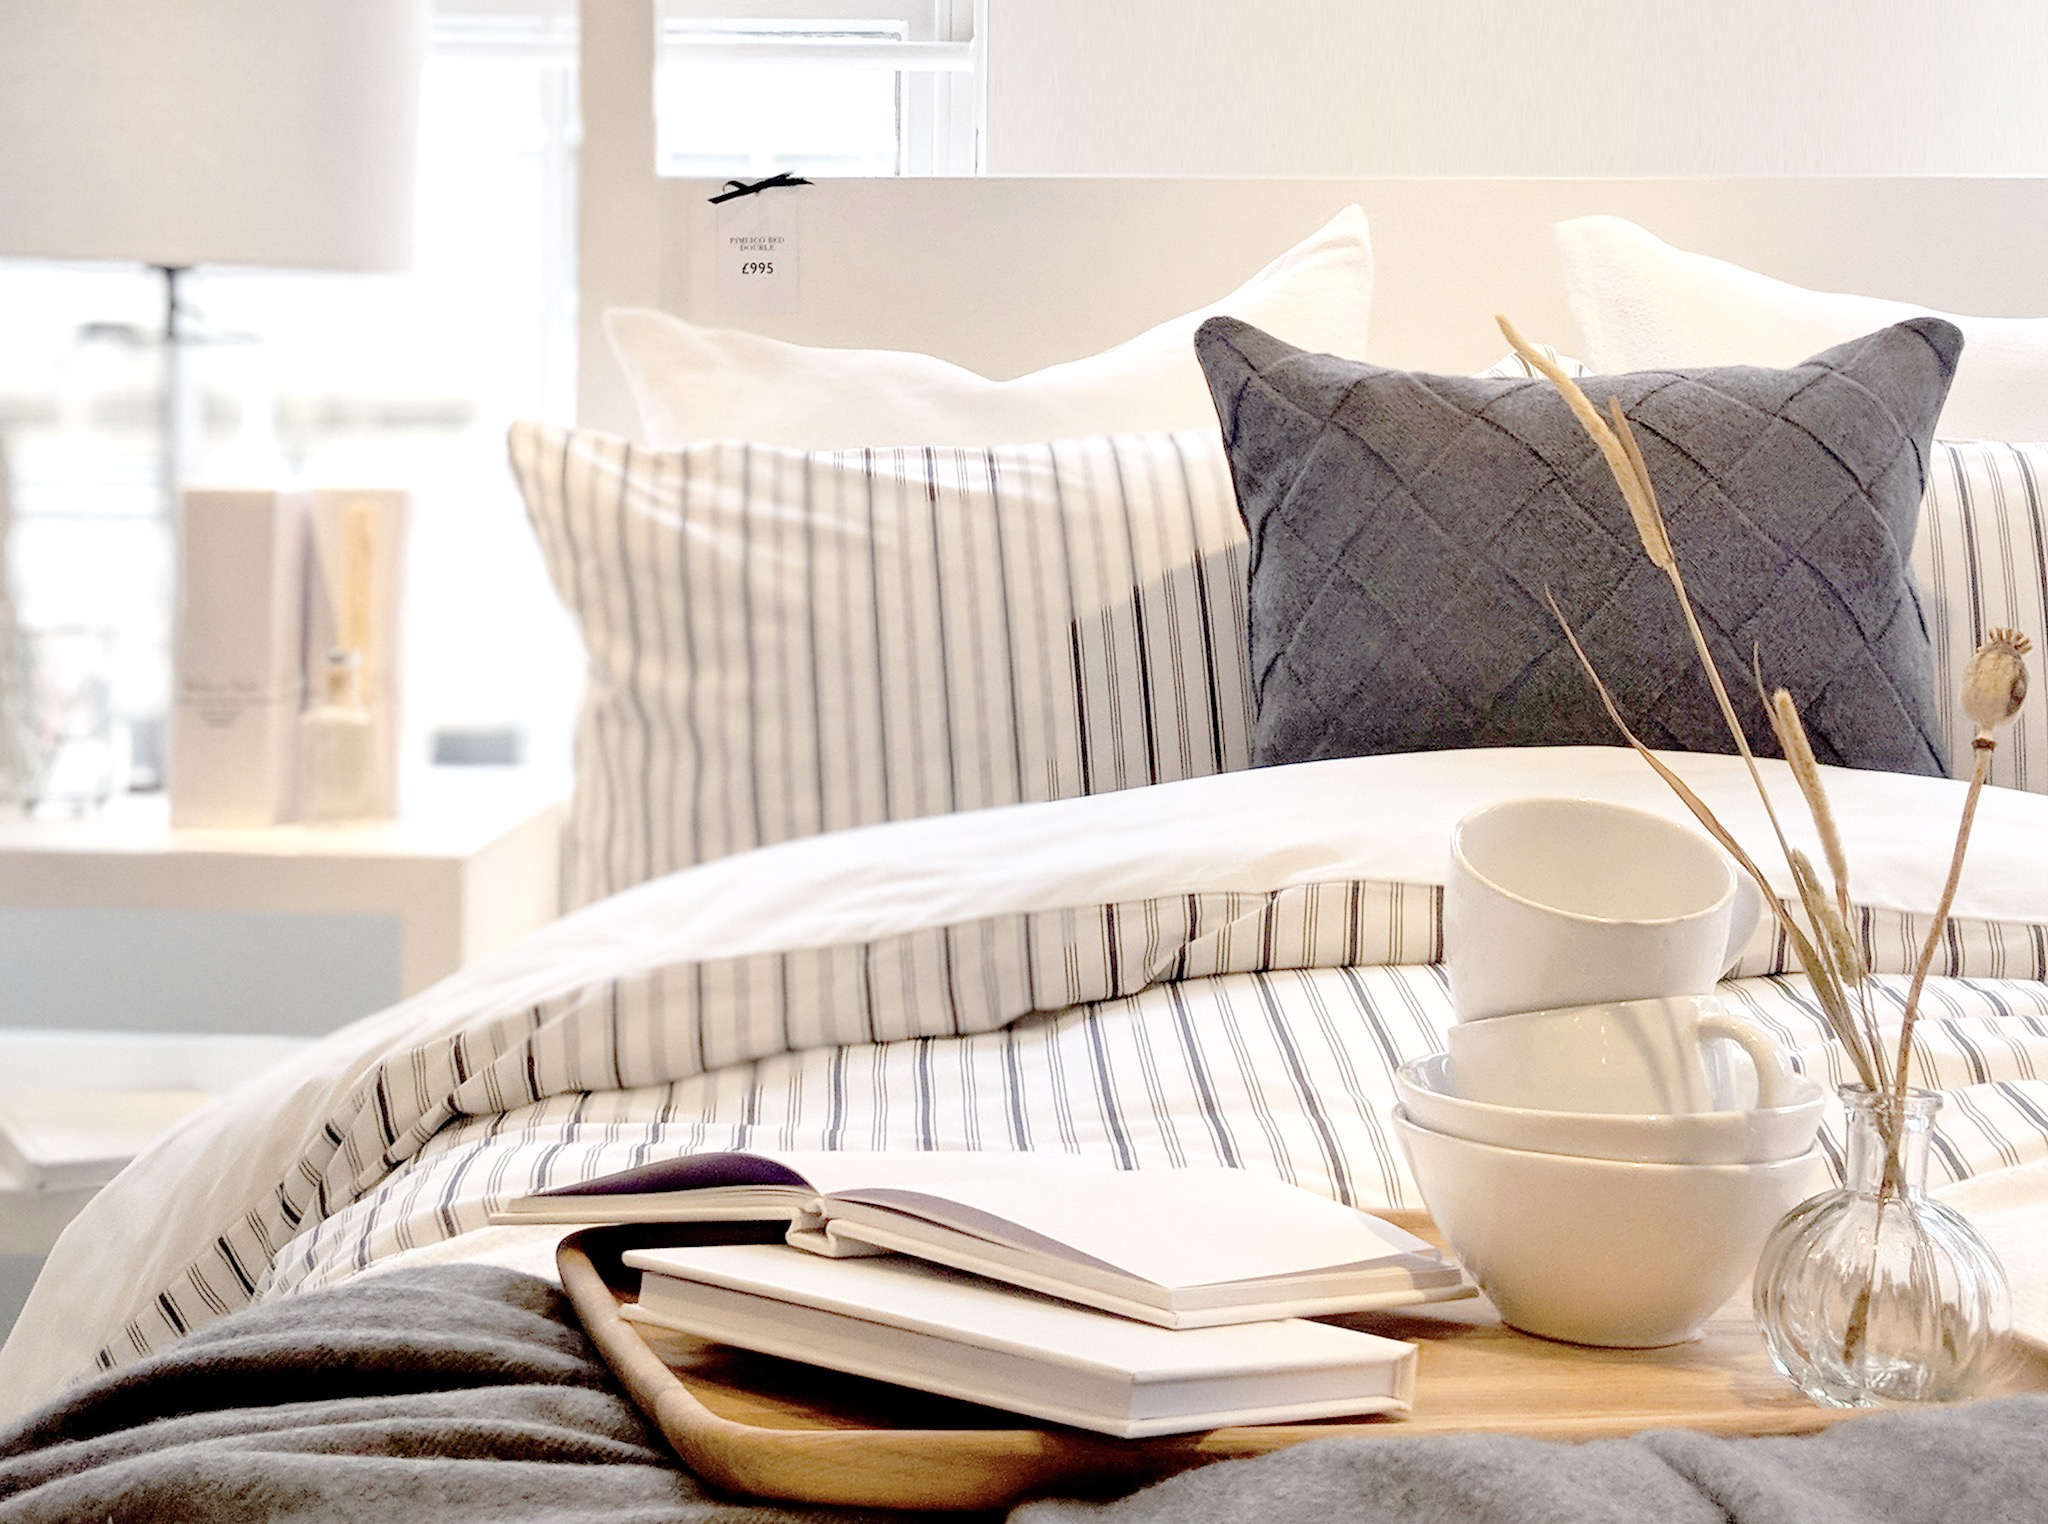 Bed made by The White Company